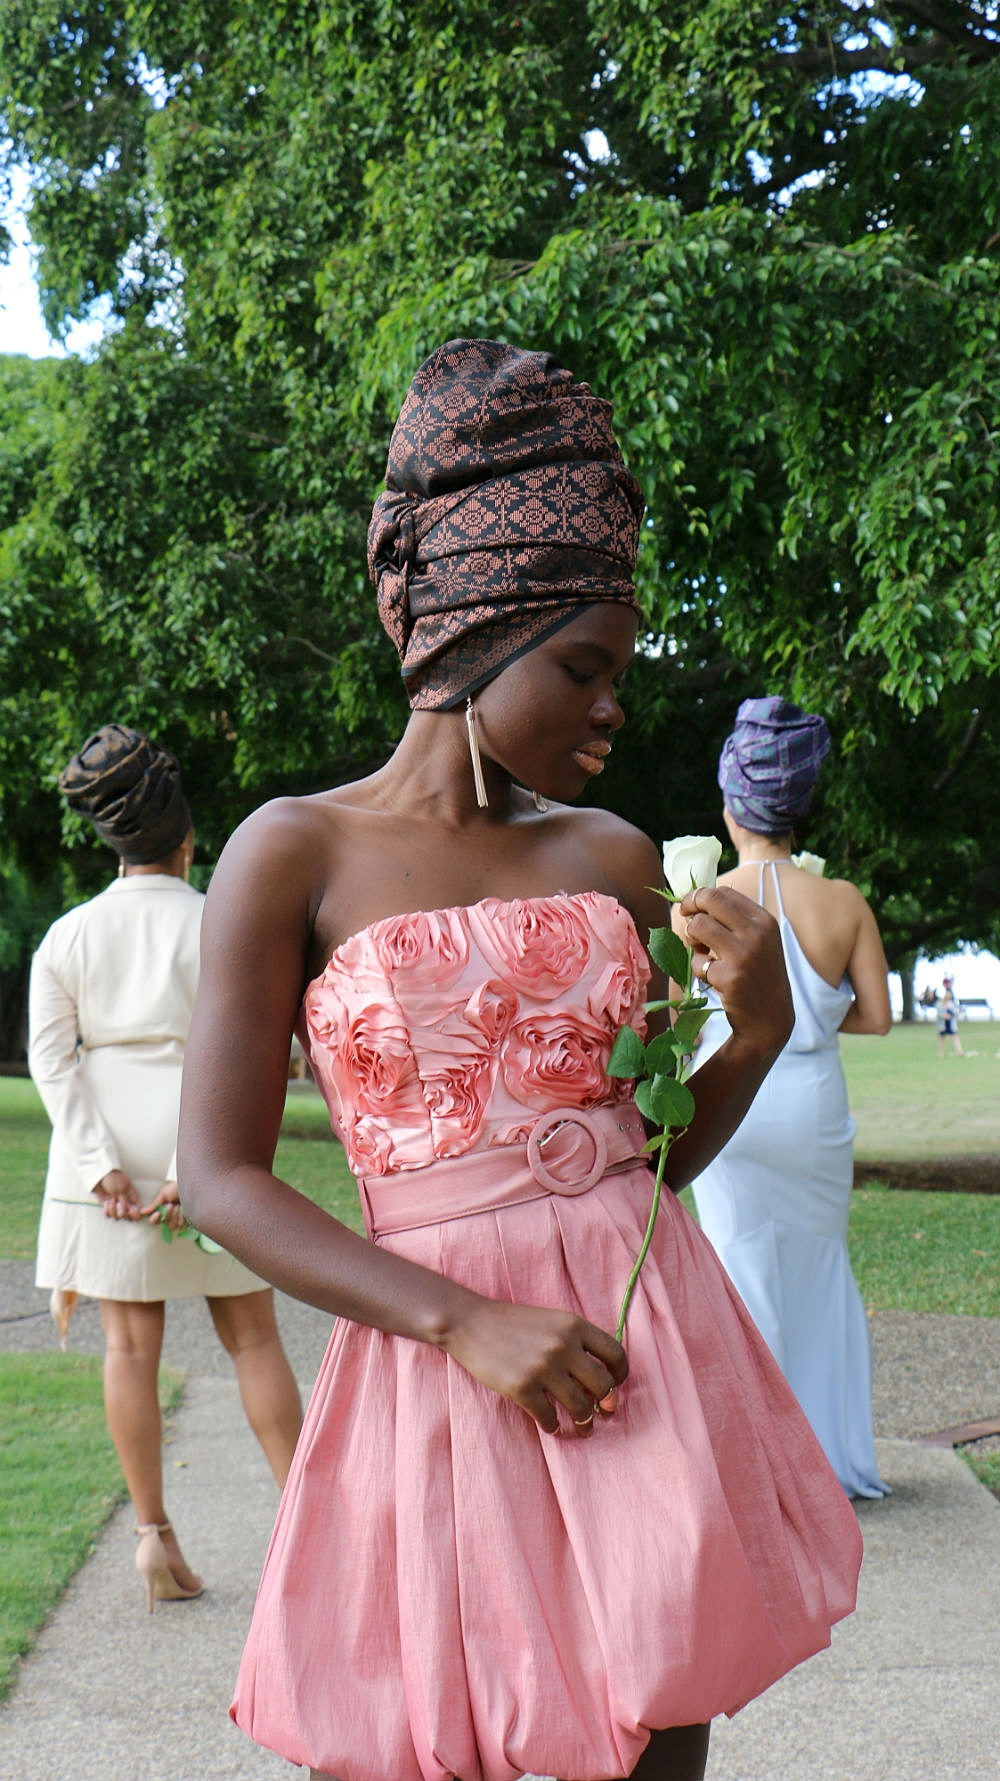 Bridesmaid or wedding guest? MARIAMA T strikes a pose in the foreground with brand ambassadors GRACEY B and DANIELA G in the background.